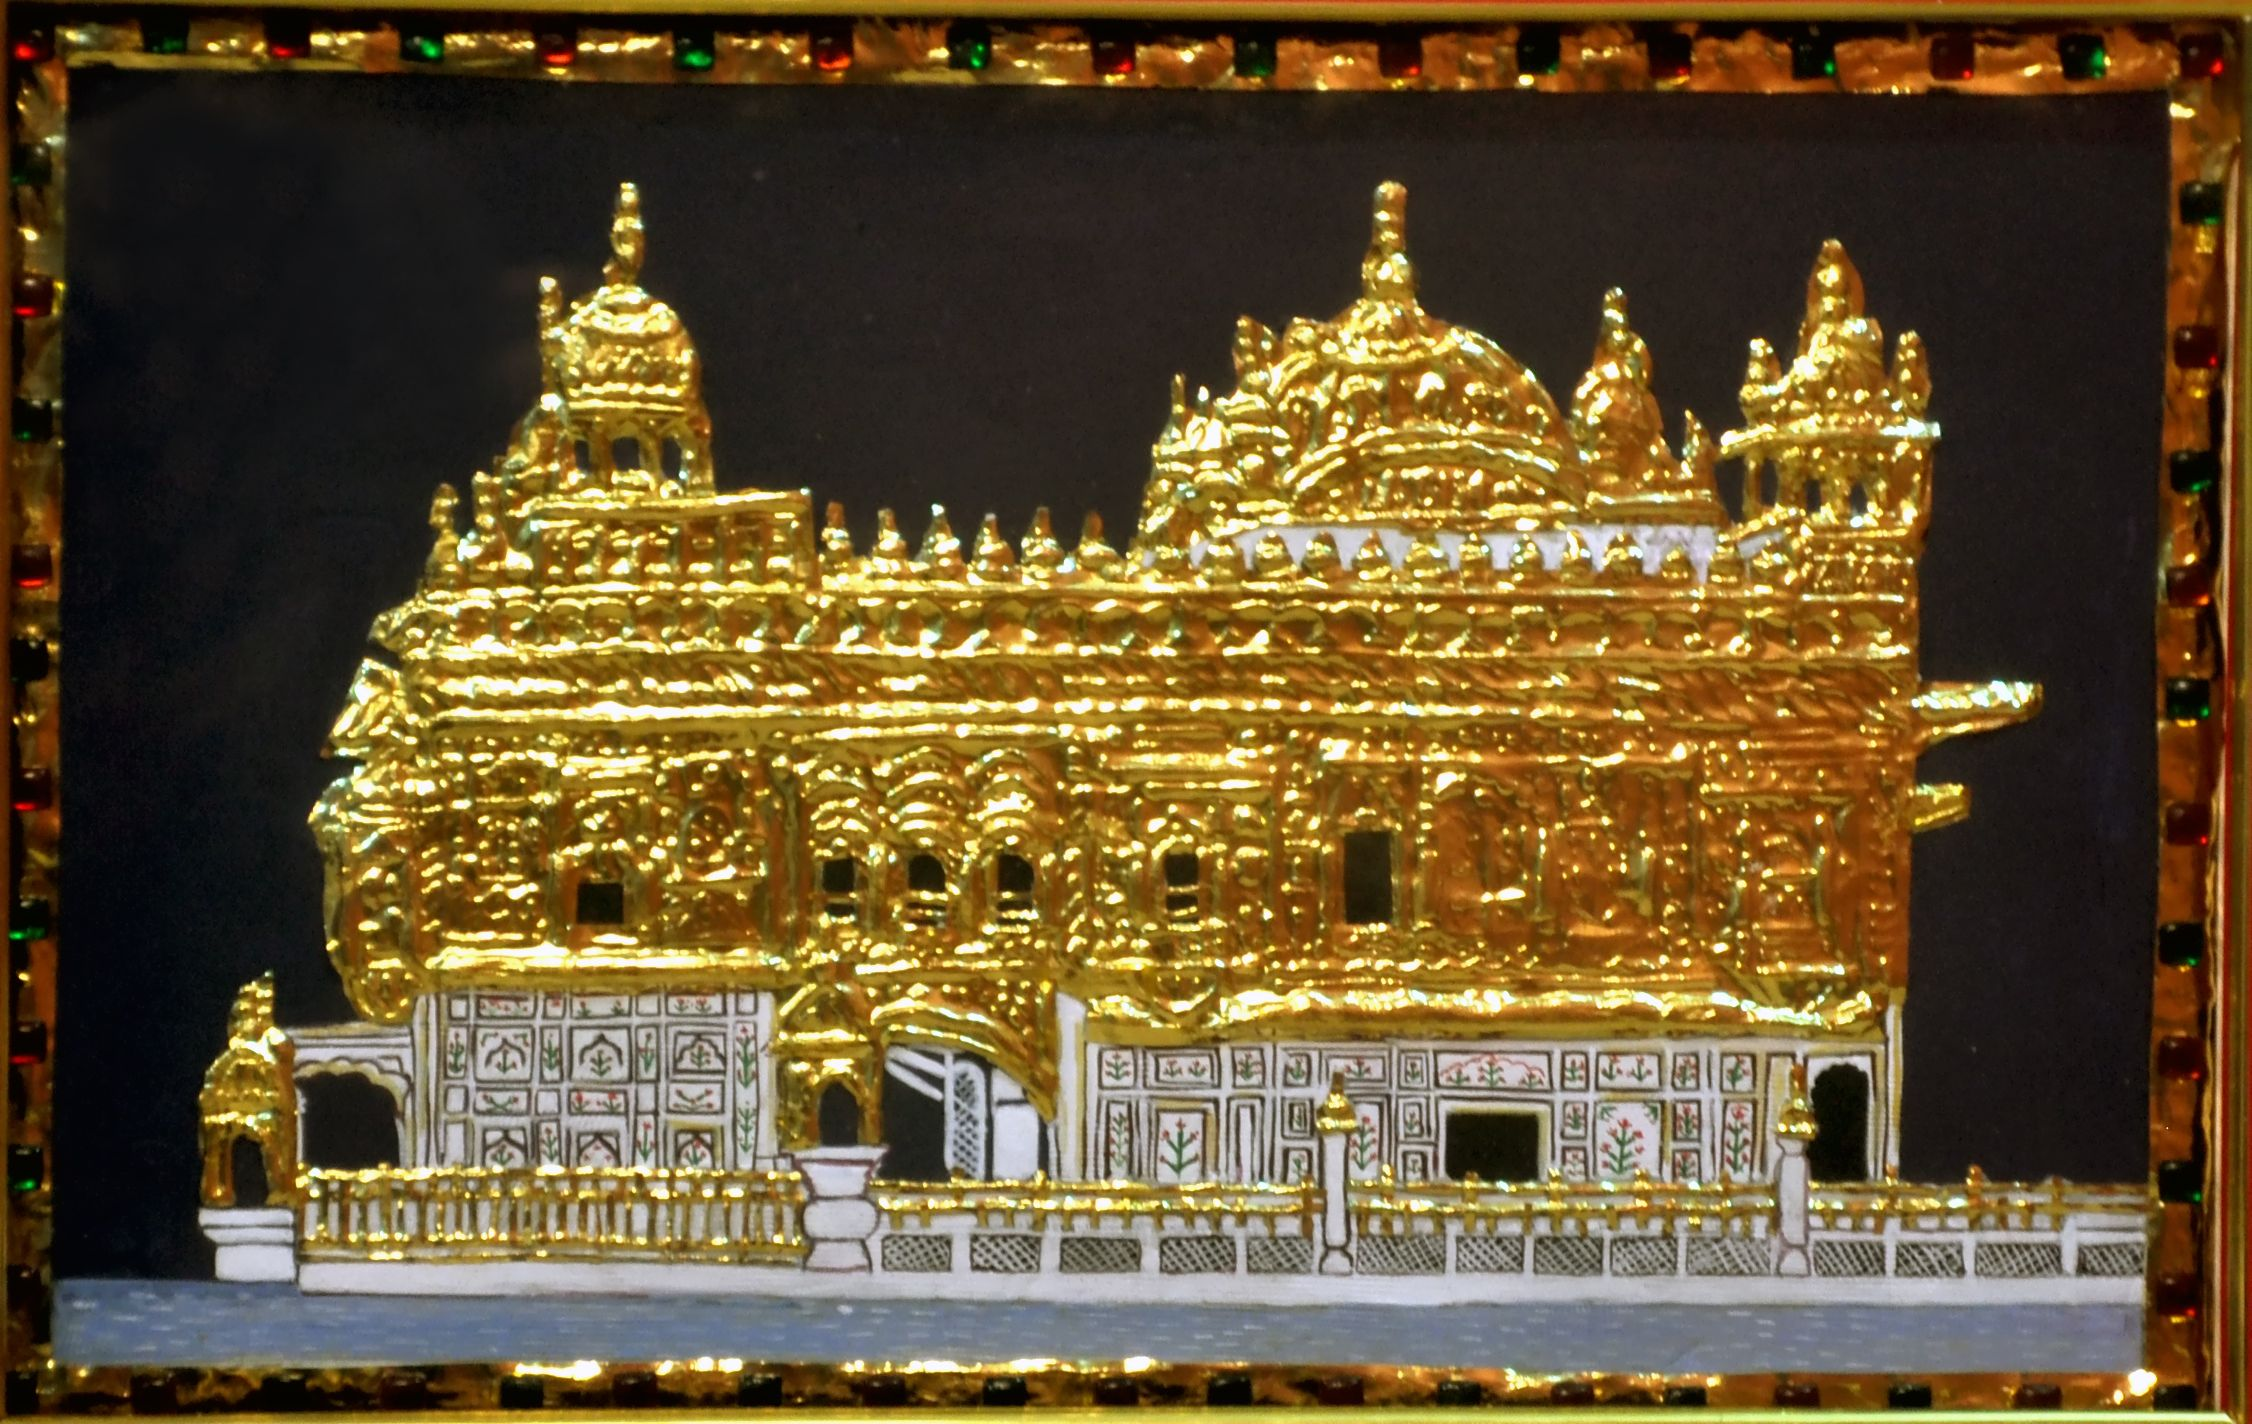 Beautiful Golden Temple In Tanjore 18 Inches By 13 Inches Attractively Framed Ready To Adorn The Wall Tanjore Painting Popular Art Thanjavur